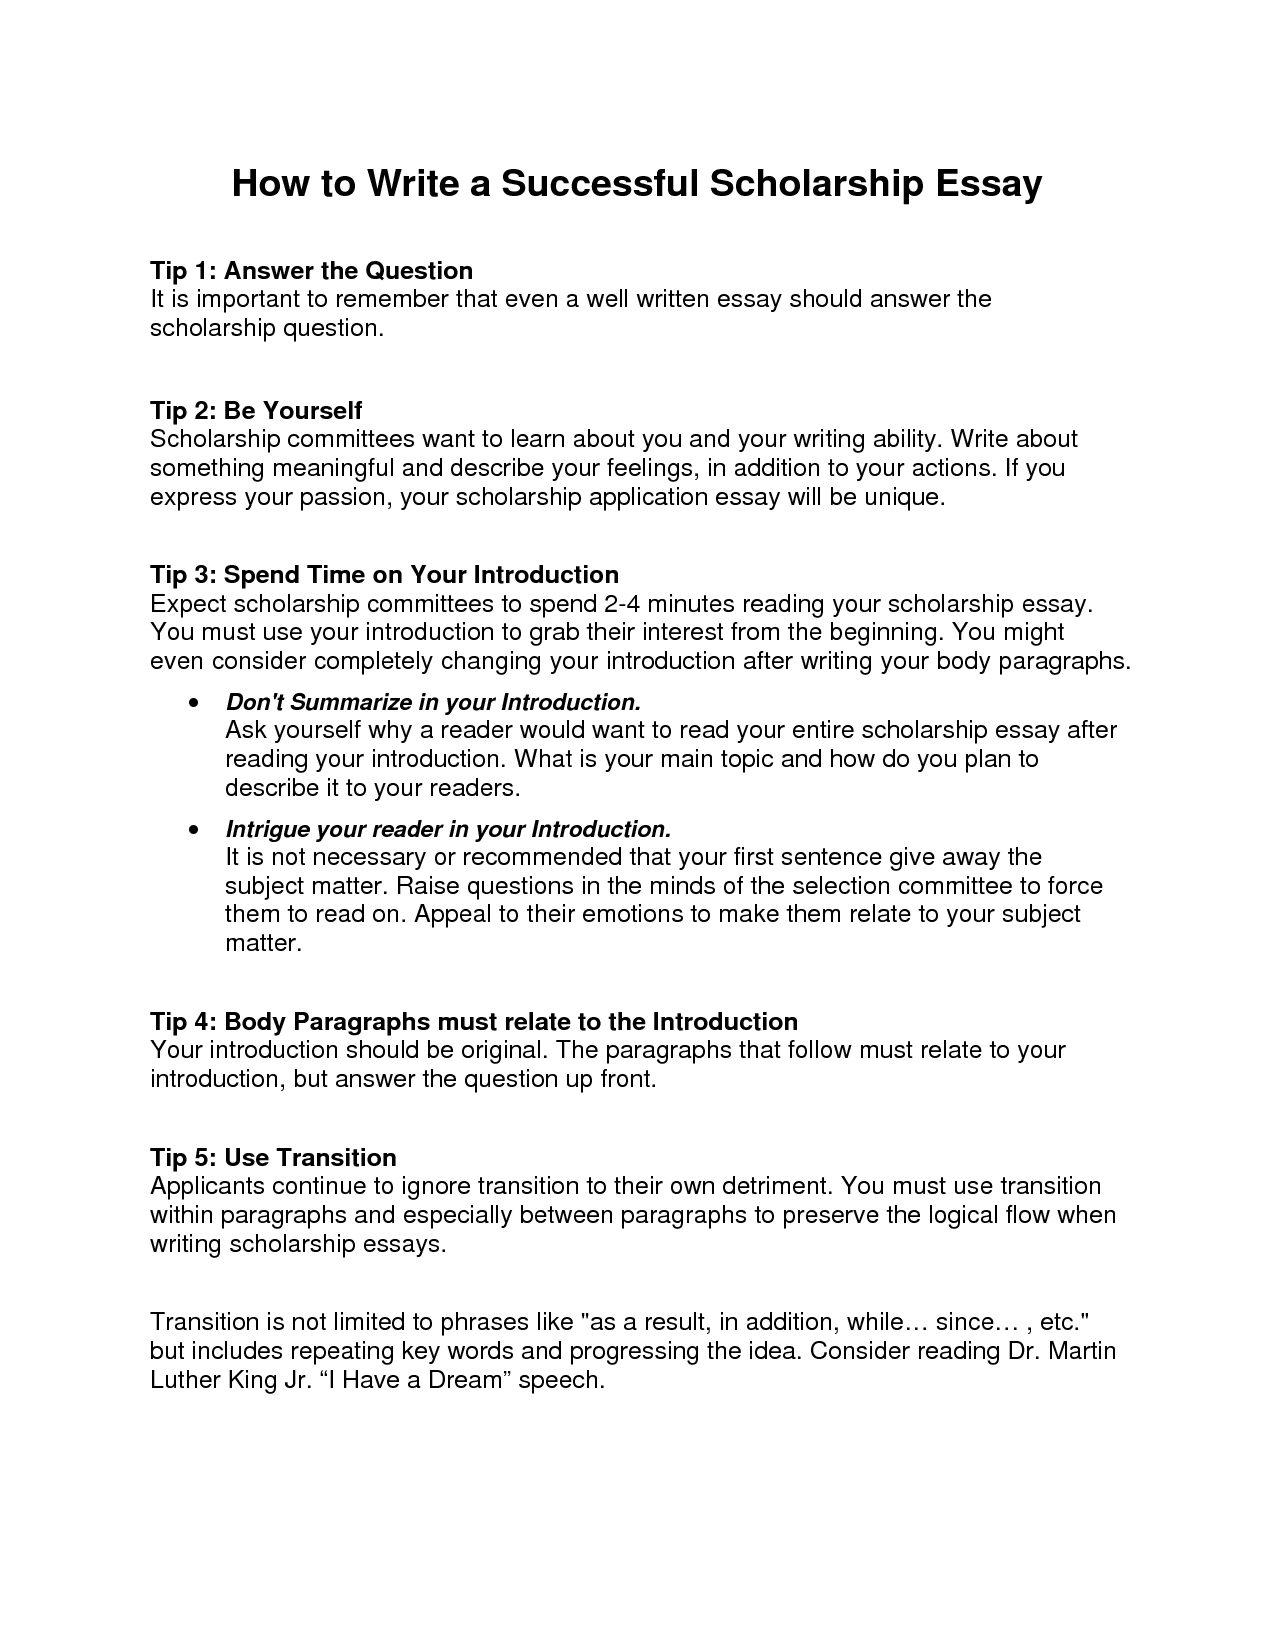 007 How To Write And Essay Example Unique An Conclusion University Level Outline For College Placement Test Full